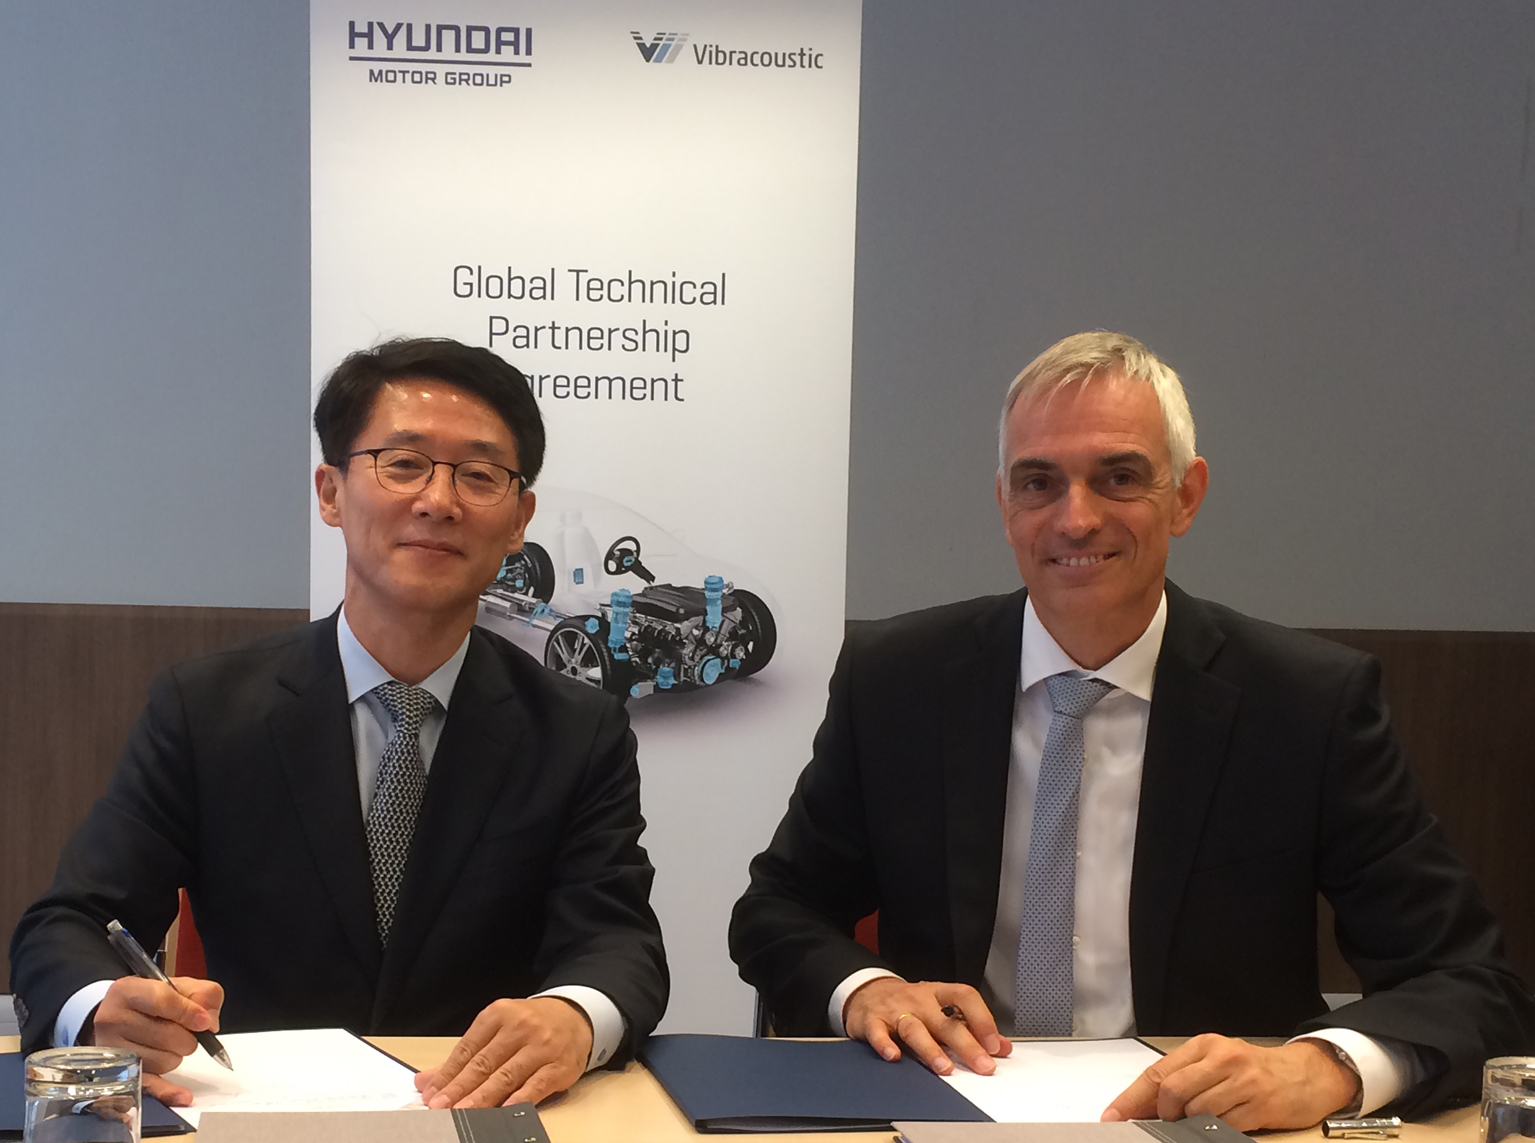 Hyundai Vibracoustic technical partnership